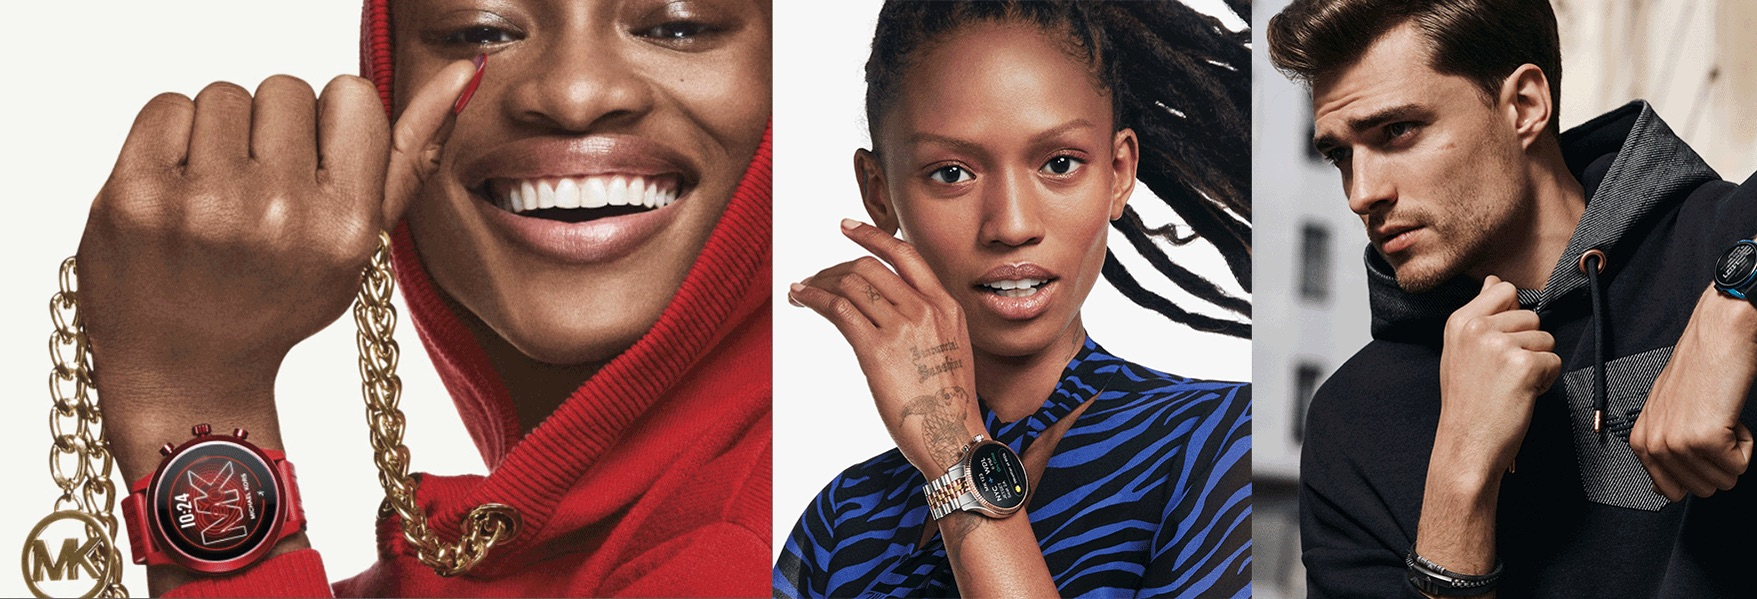 Puma, Michael Kors, Armani, and Diesel all introduced Snapdragon Wear 3100 smartwatches at IFA